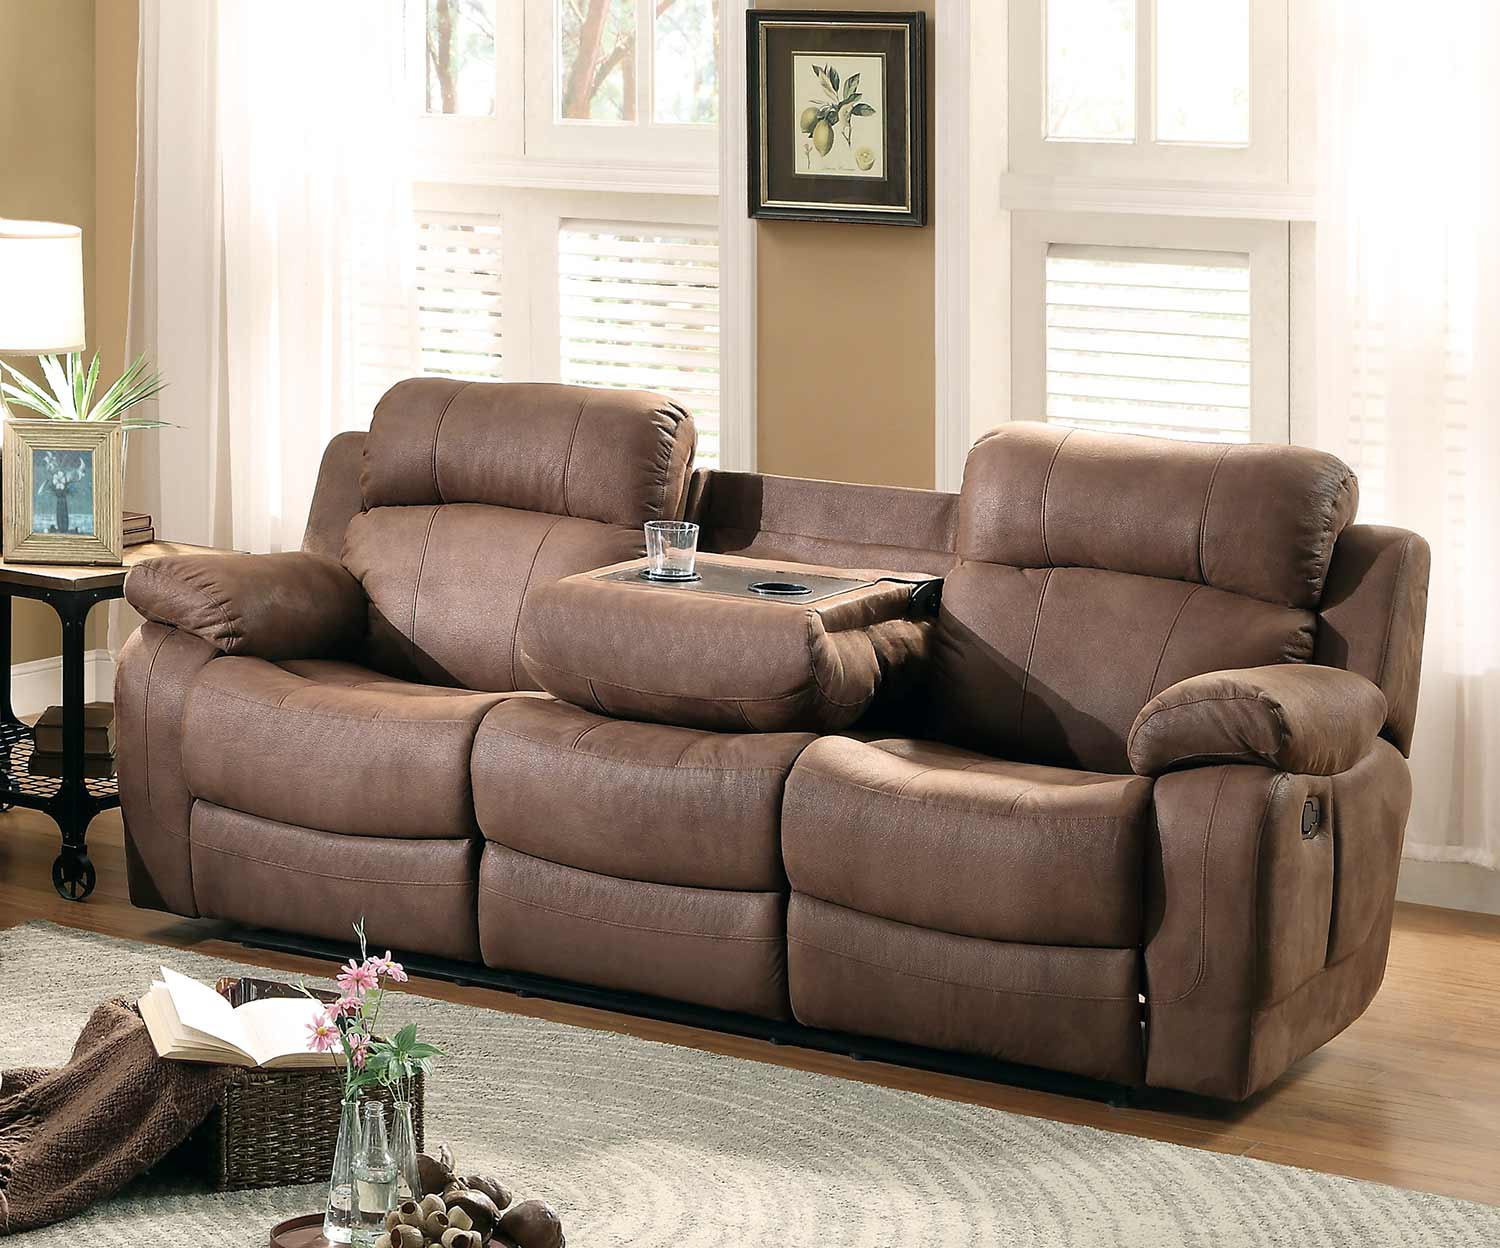 Marille Brown Fabric Double Reclining